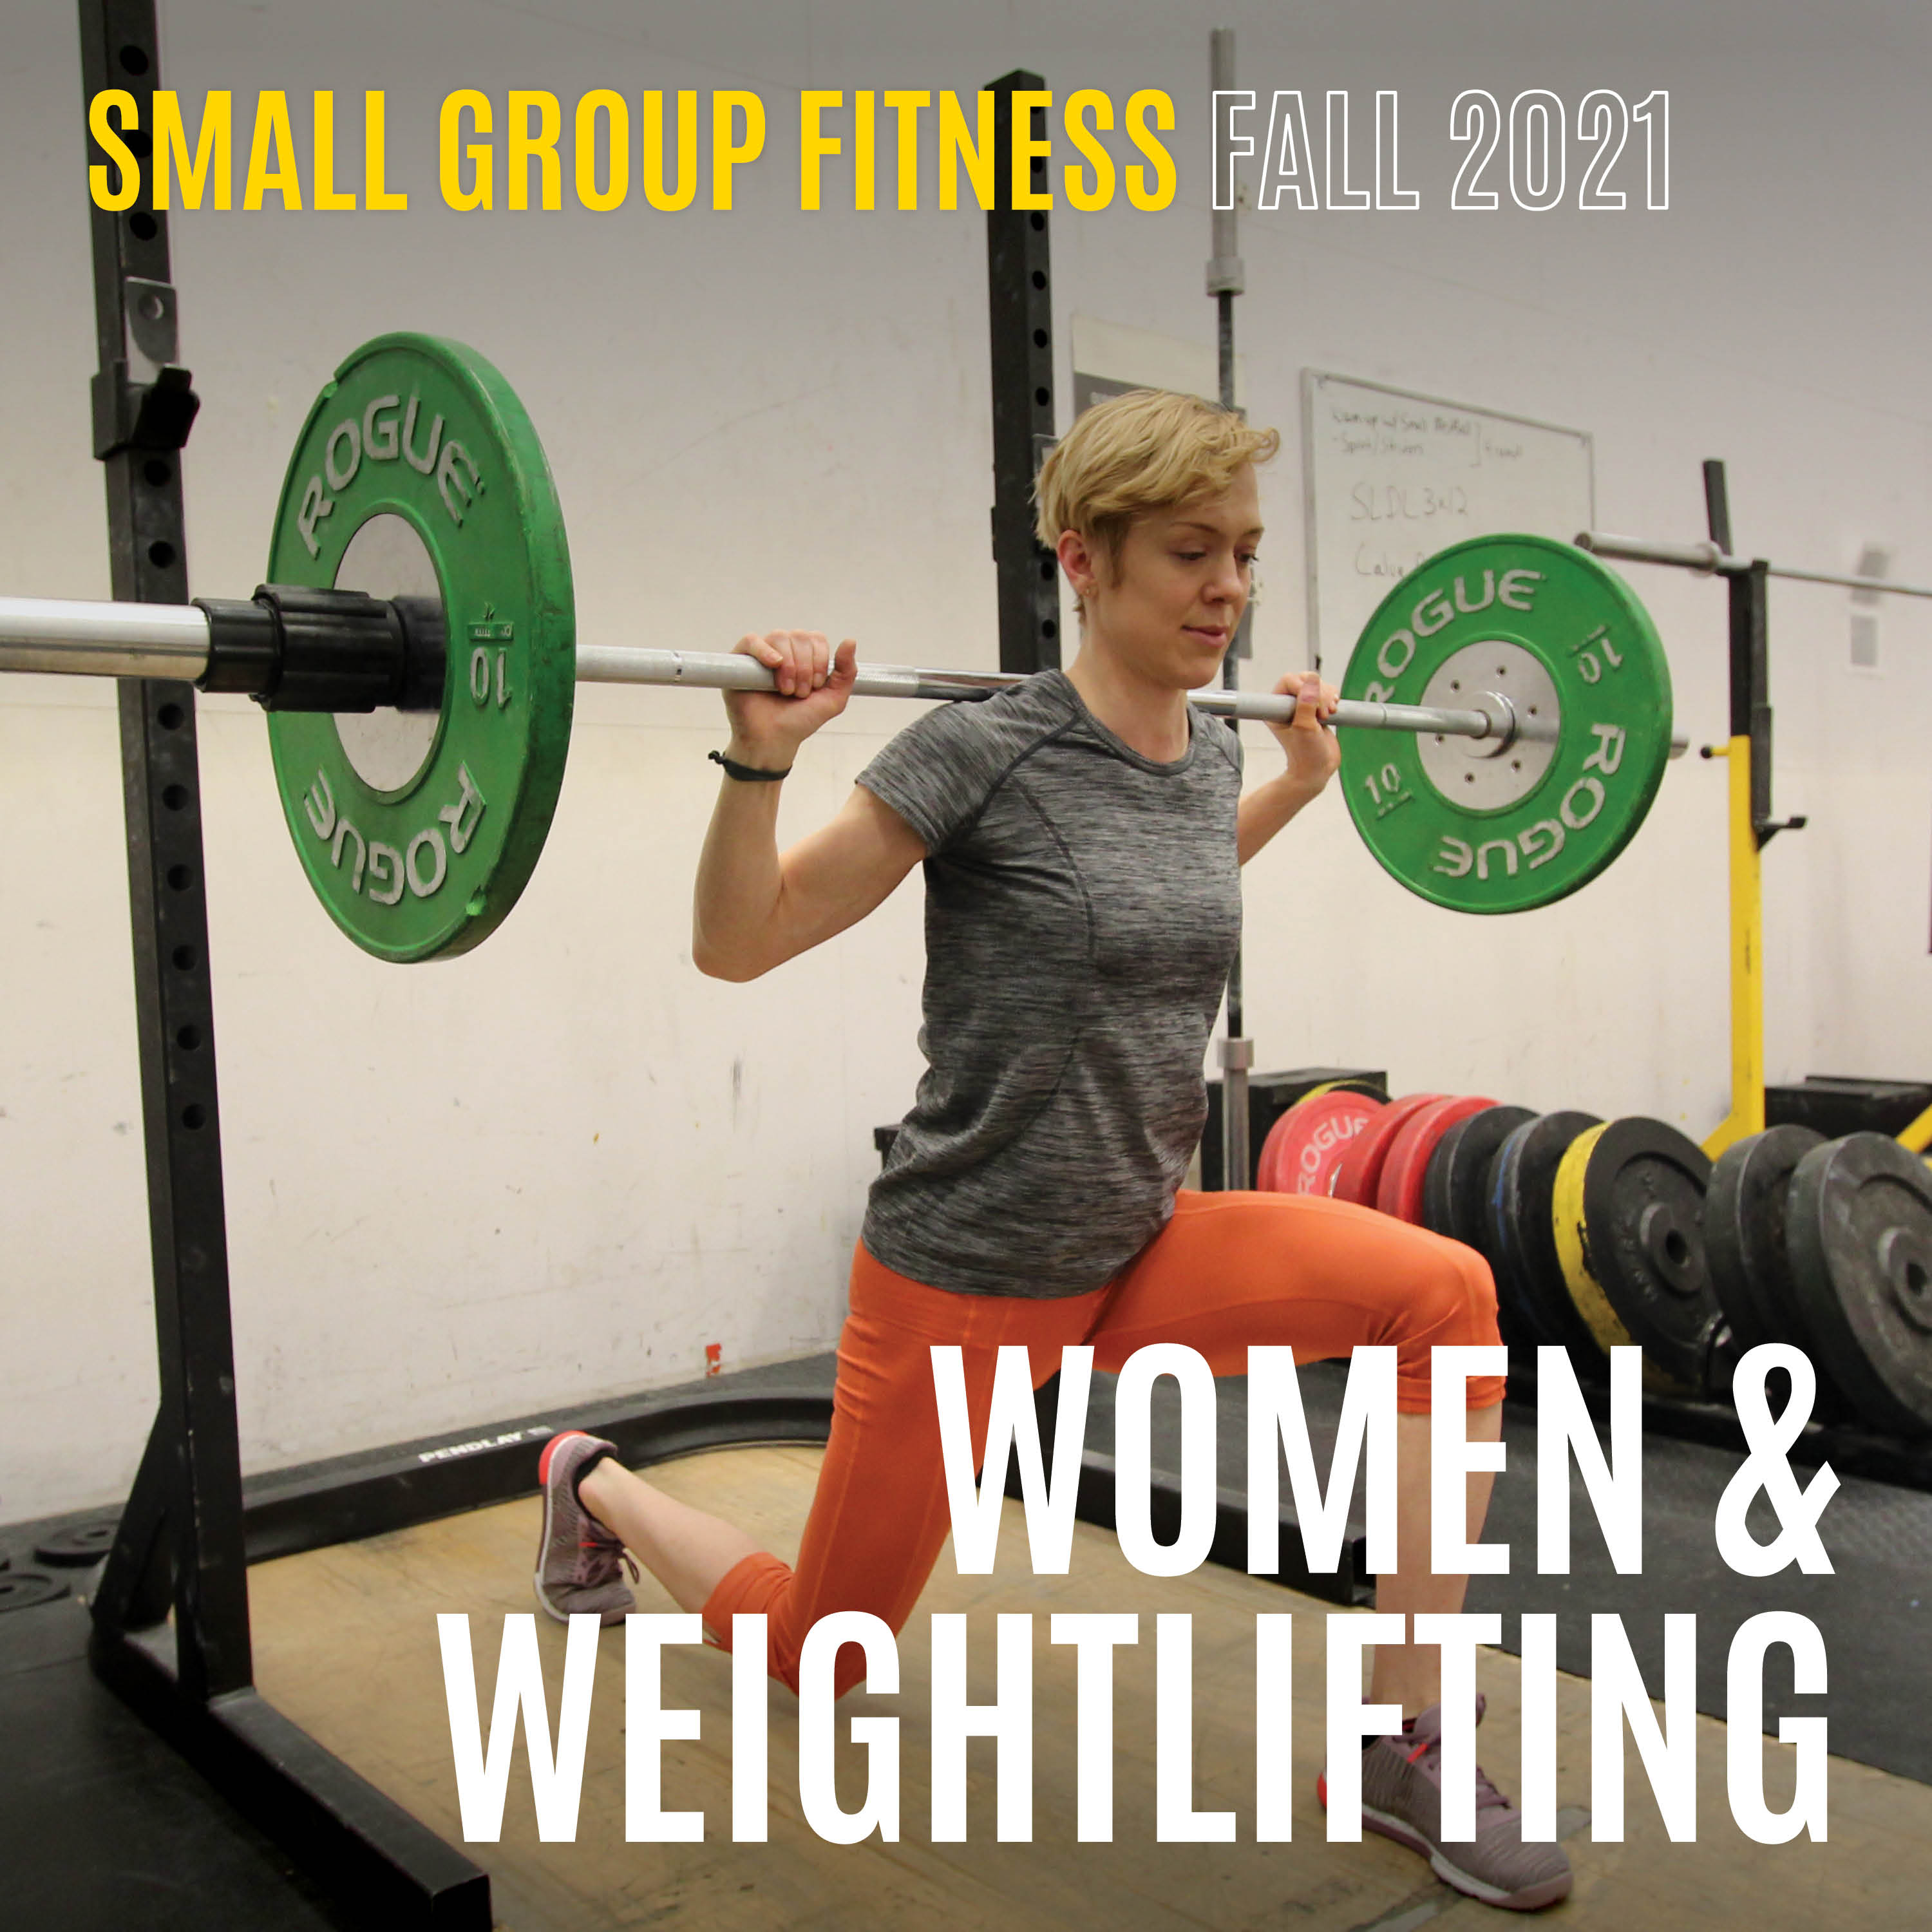 Small group training Fall 2021 Women & Weightlifting